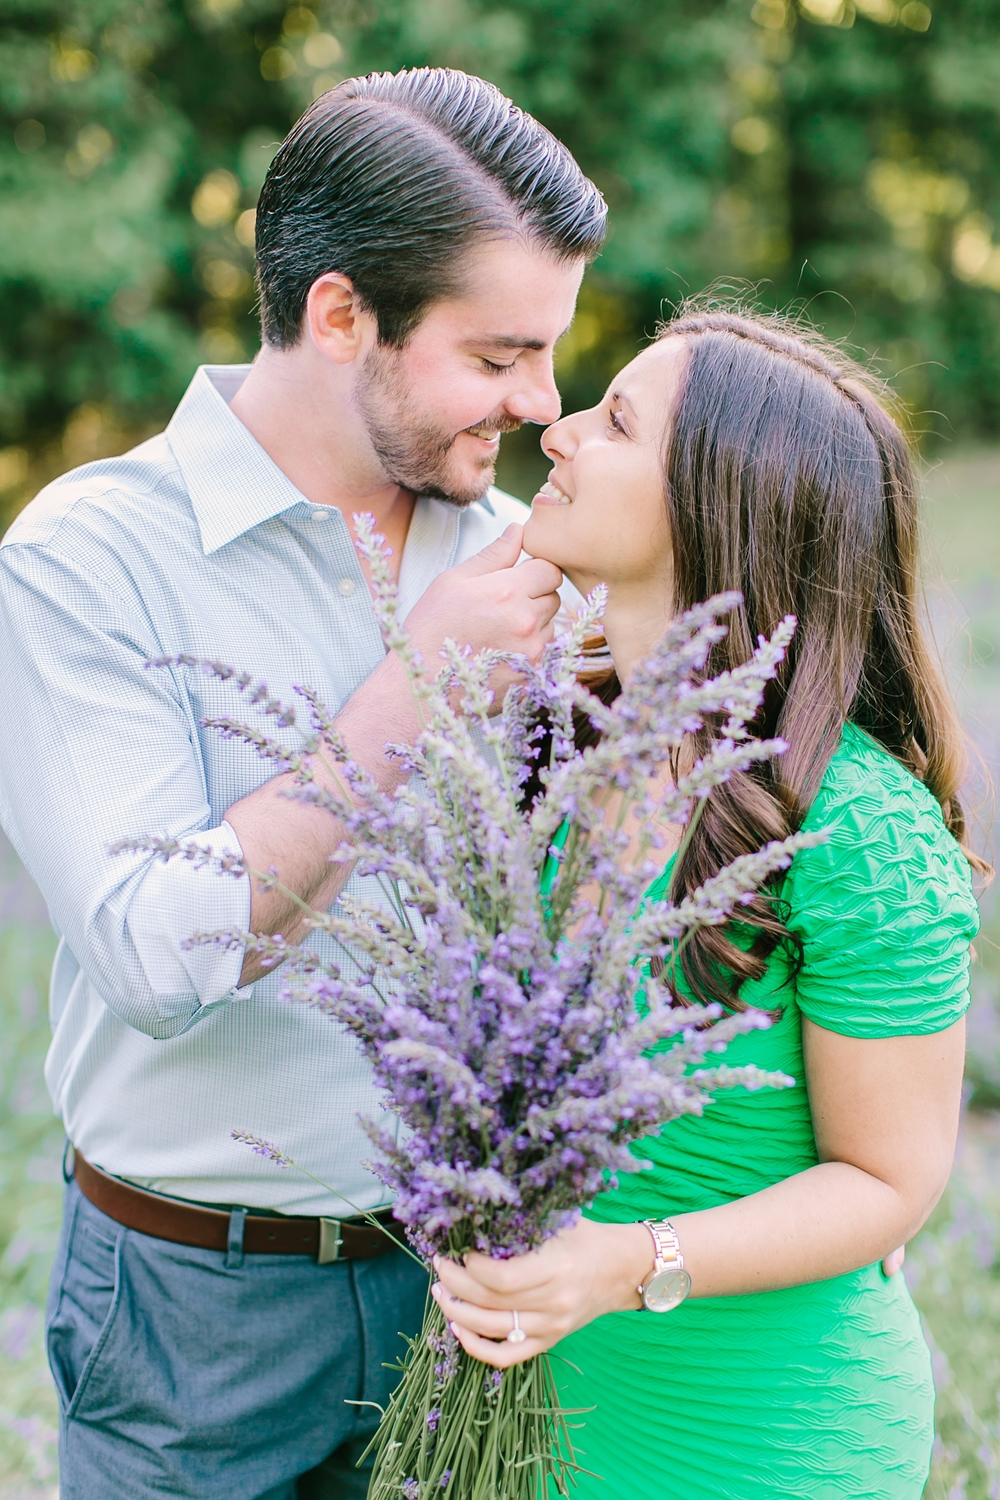 pleasant_valley_lavender_farm_nj_engagement_photos16.jpg